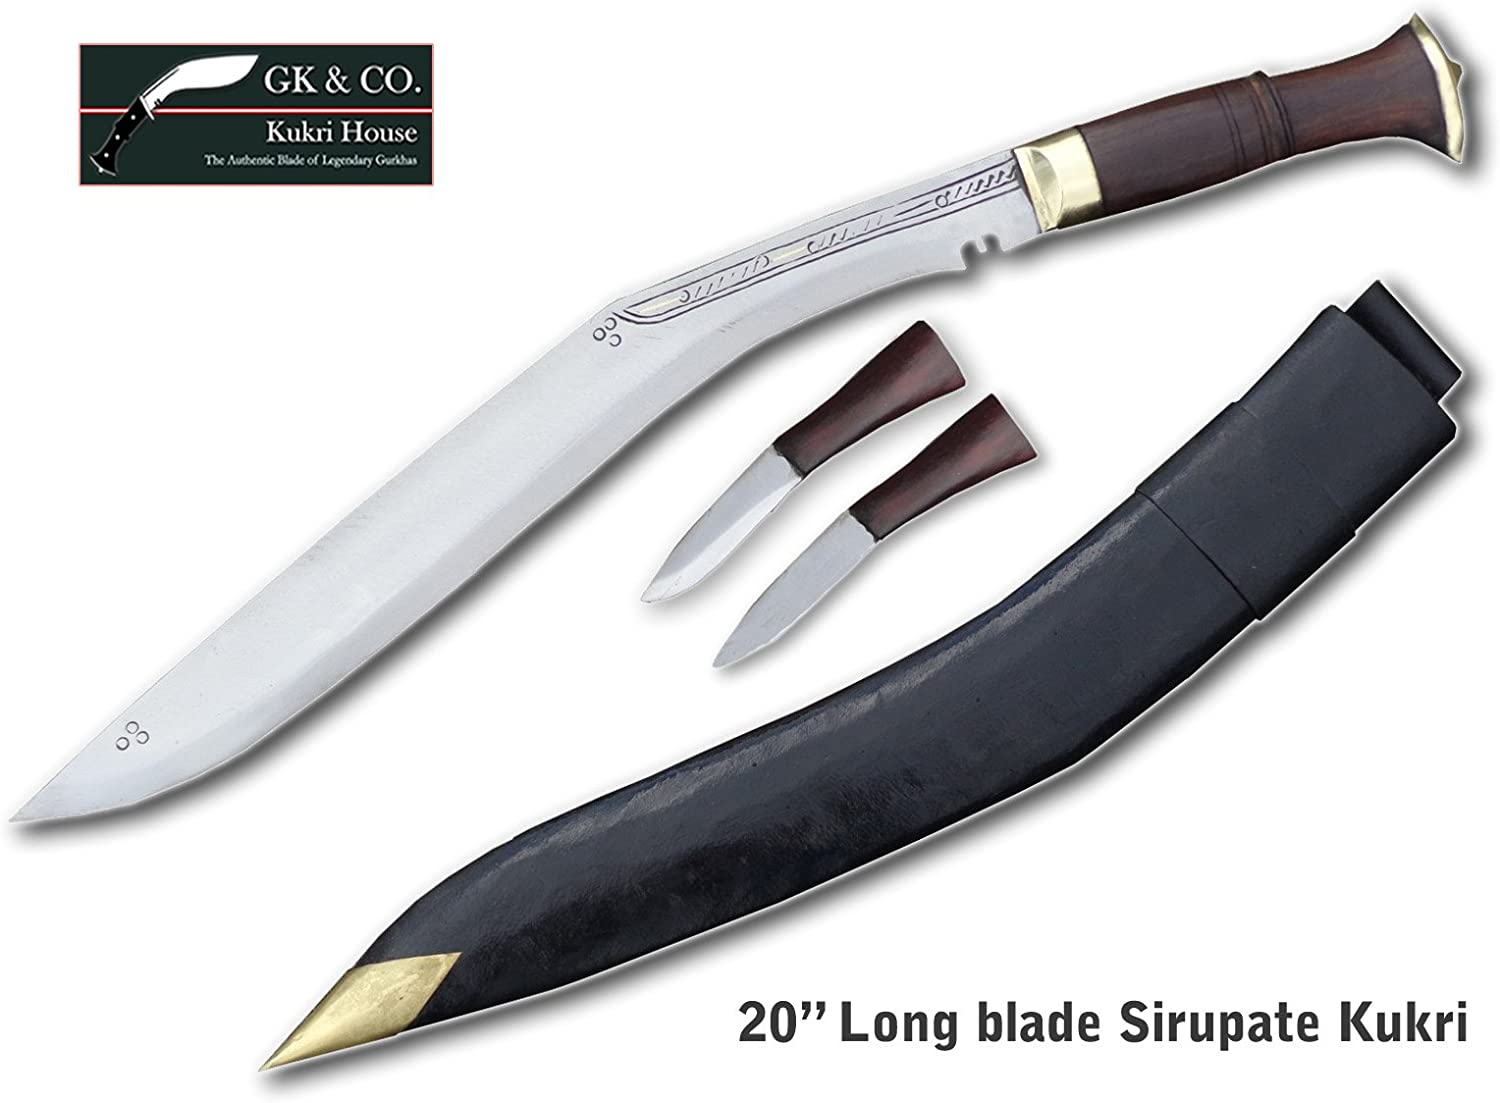 Genuine Gurkha Kukri Knife – 20 Blade Full Tang GK CO. Special Long Semi-polished Knife – Handmade by GK CO. Kukri House in Nepal.